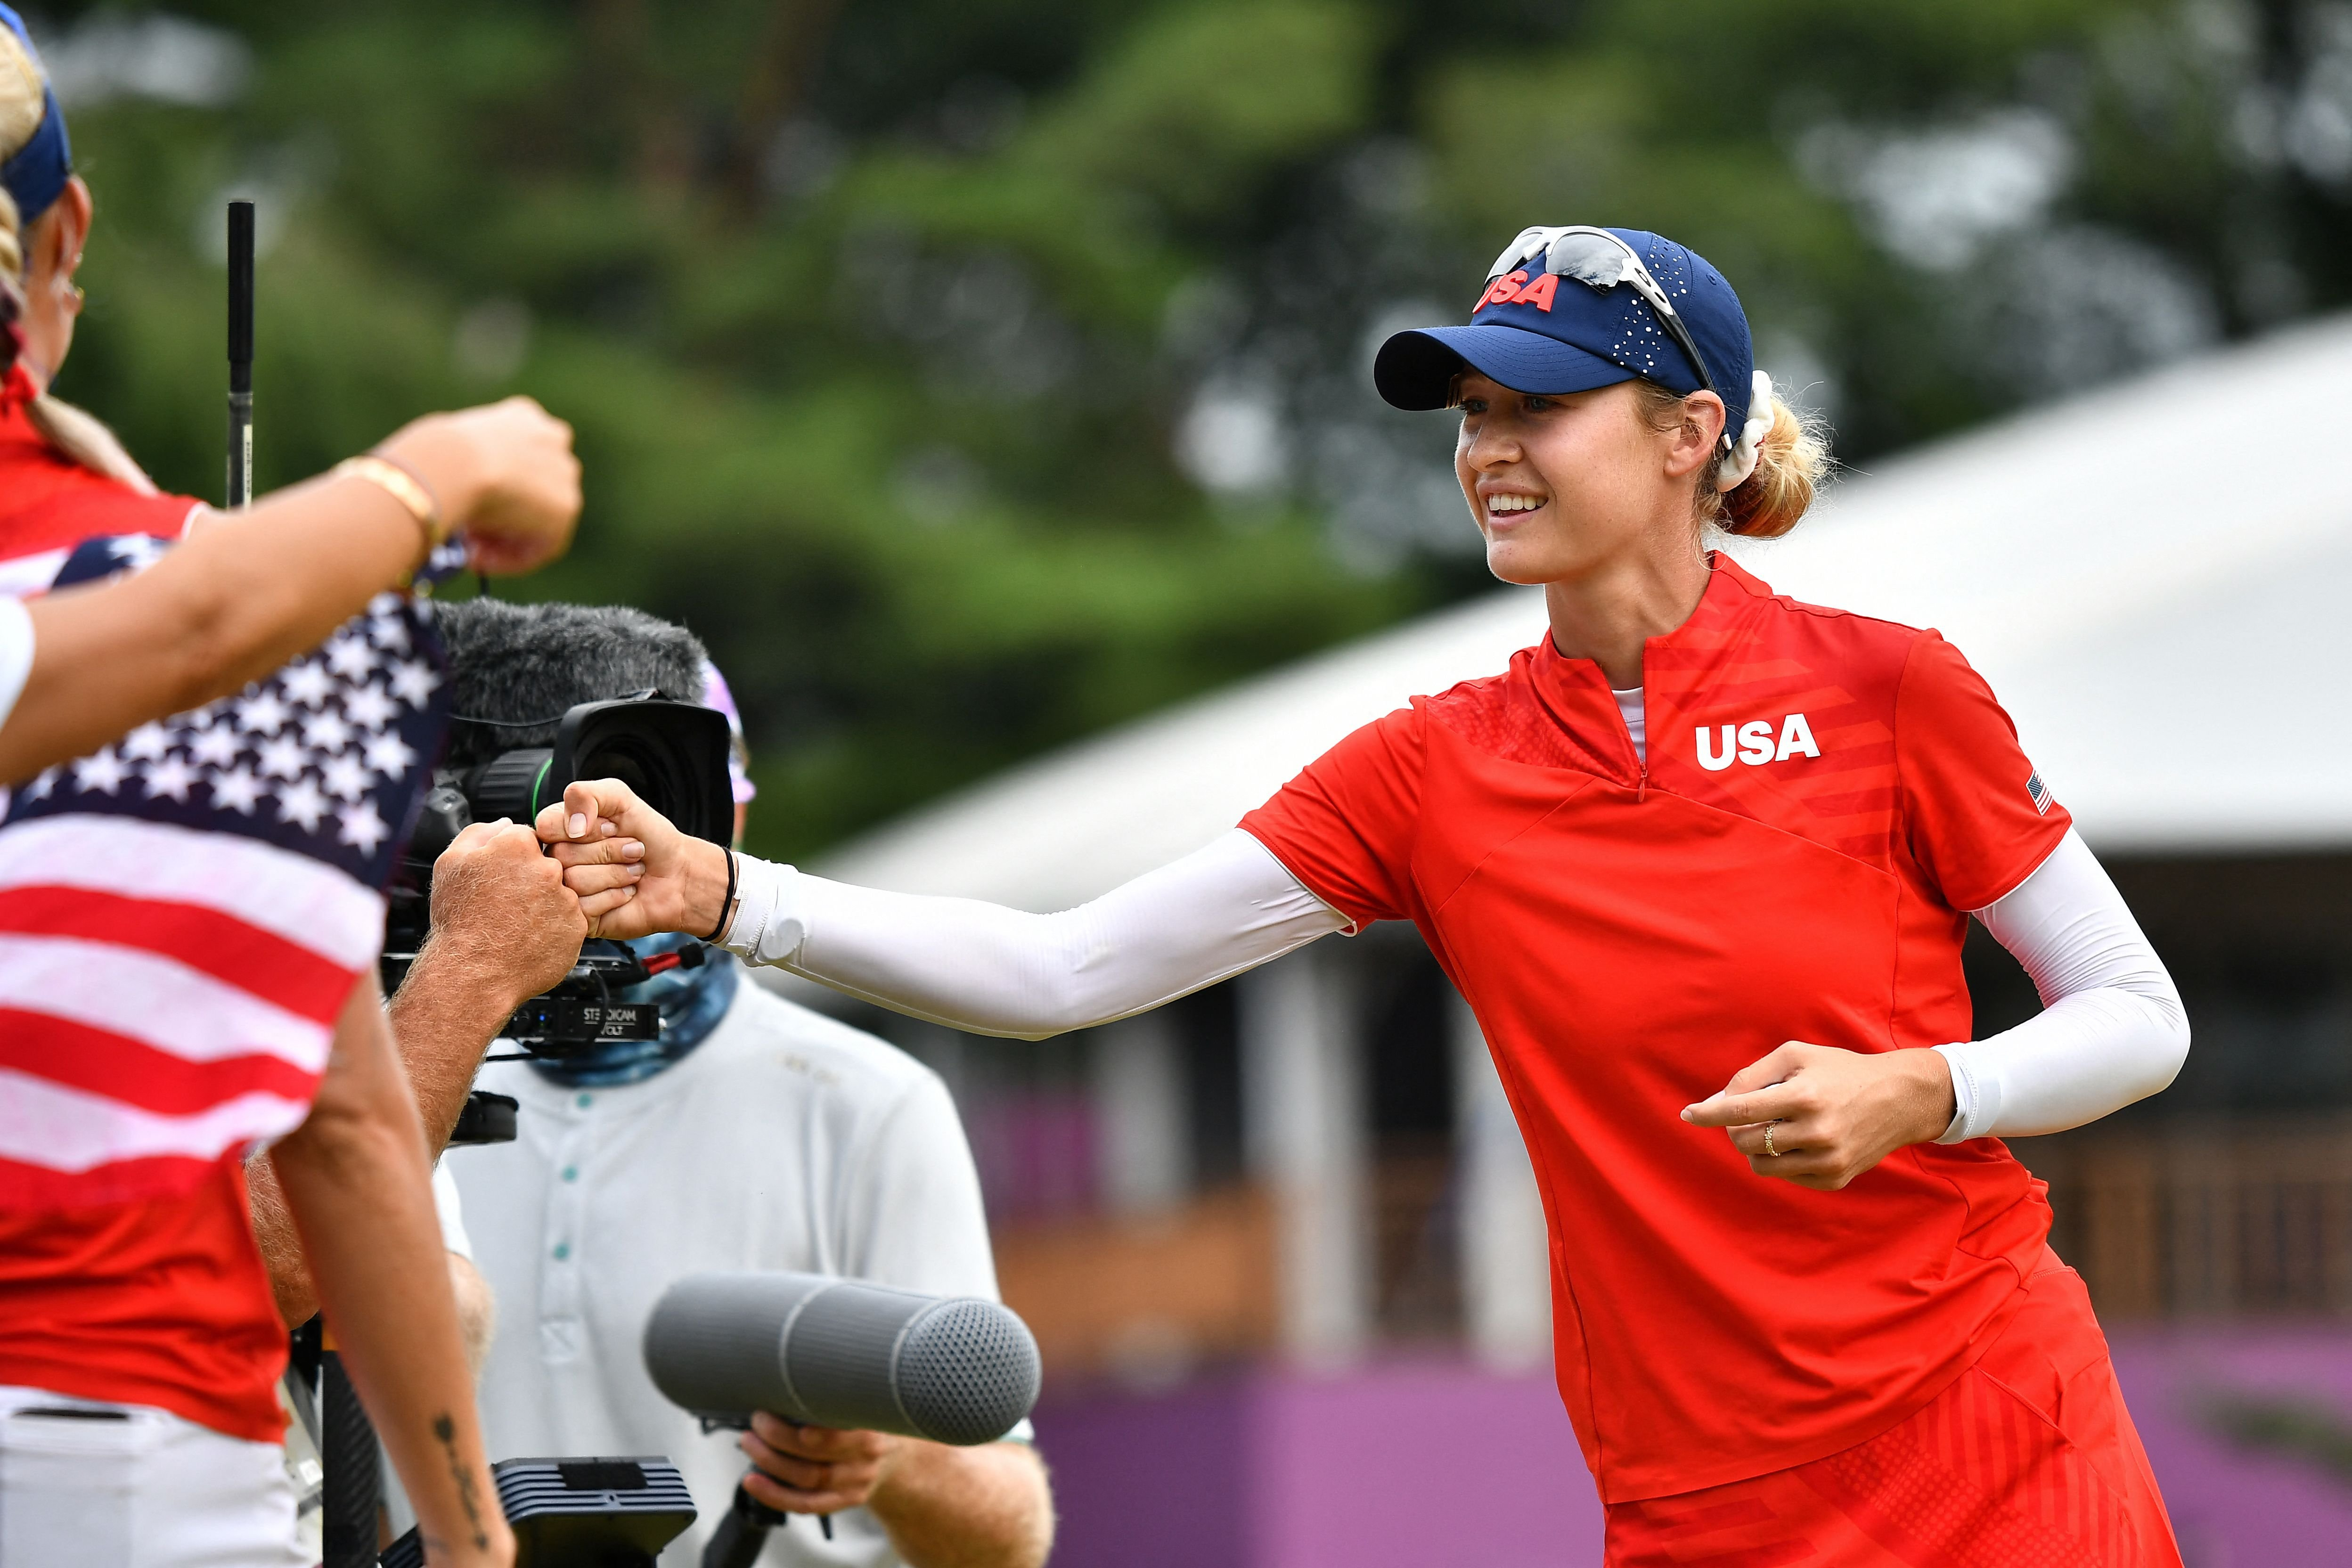 Nelly Korda wins gold as Team USA dominates golf in Tokyo